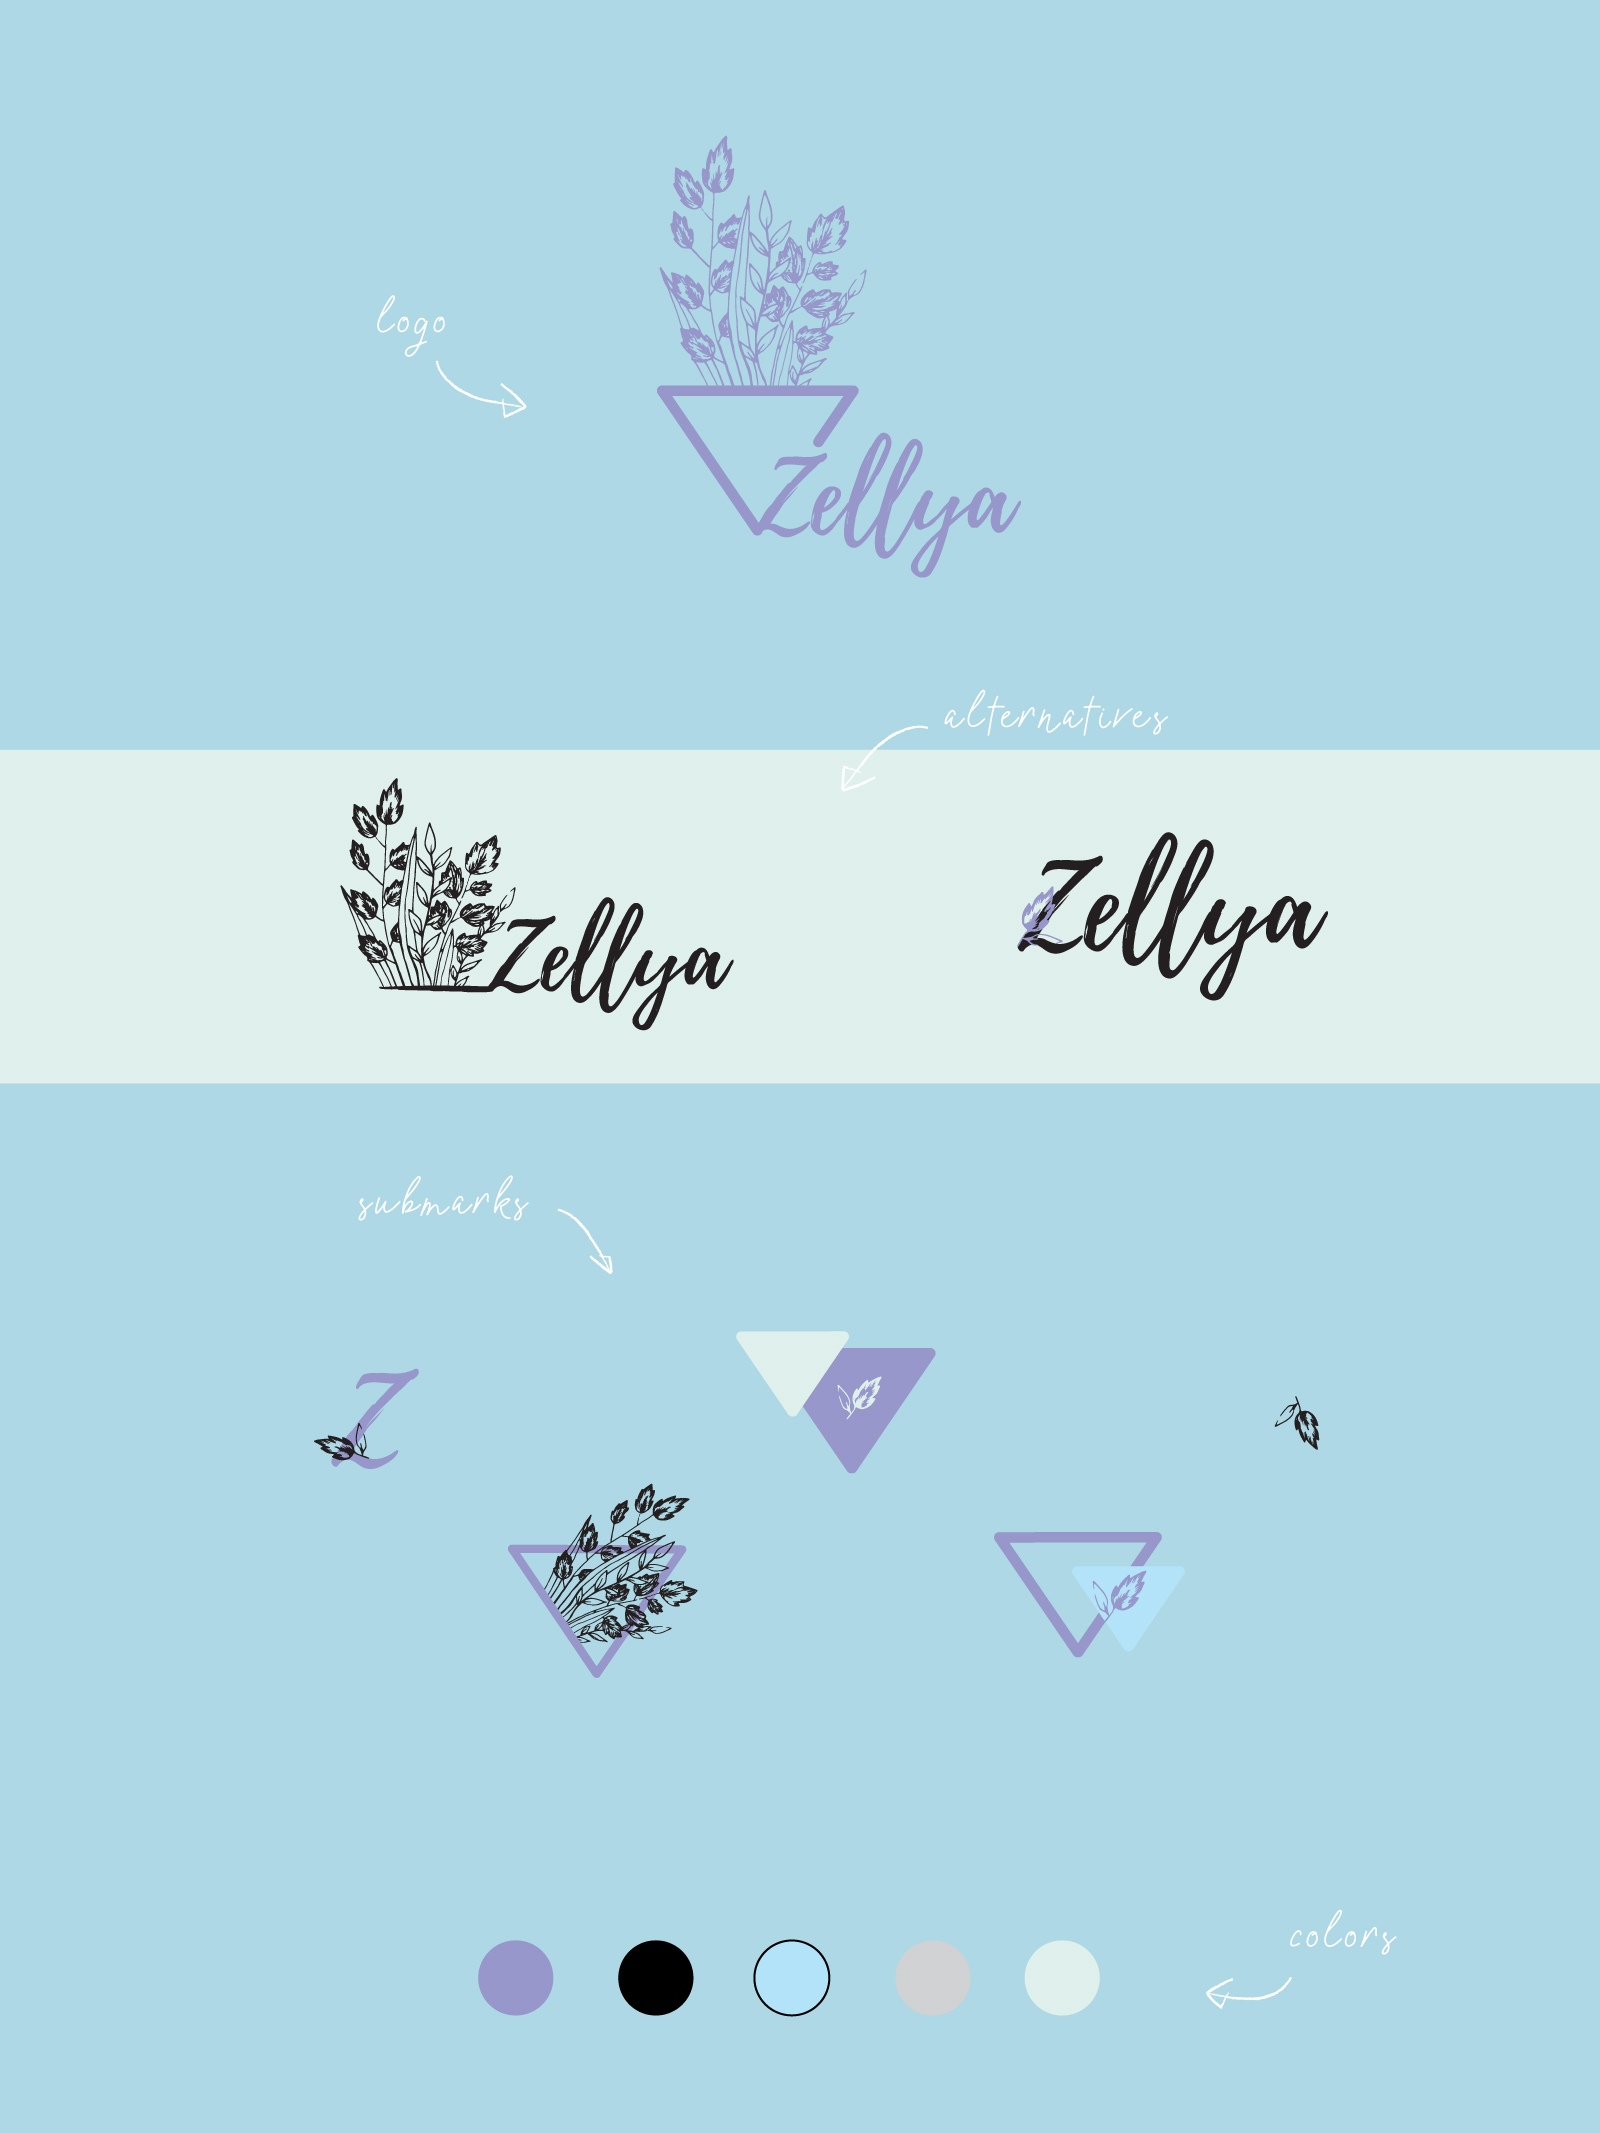 Design_Branding for Zellya.jpg